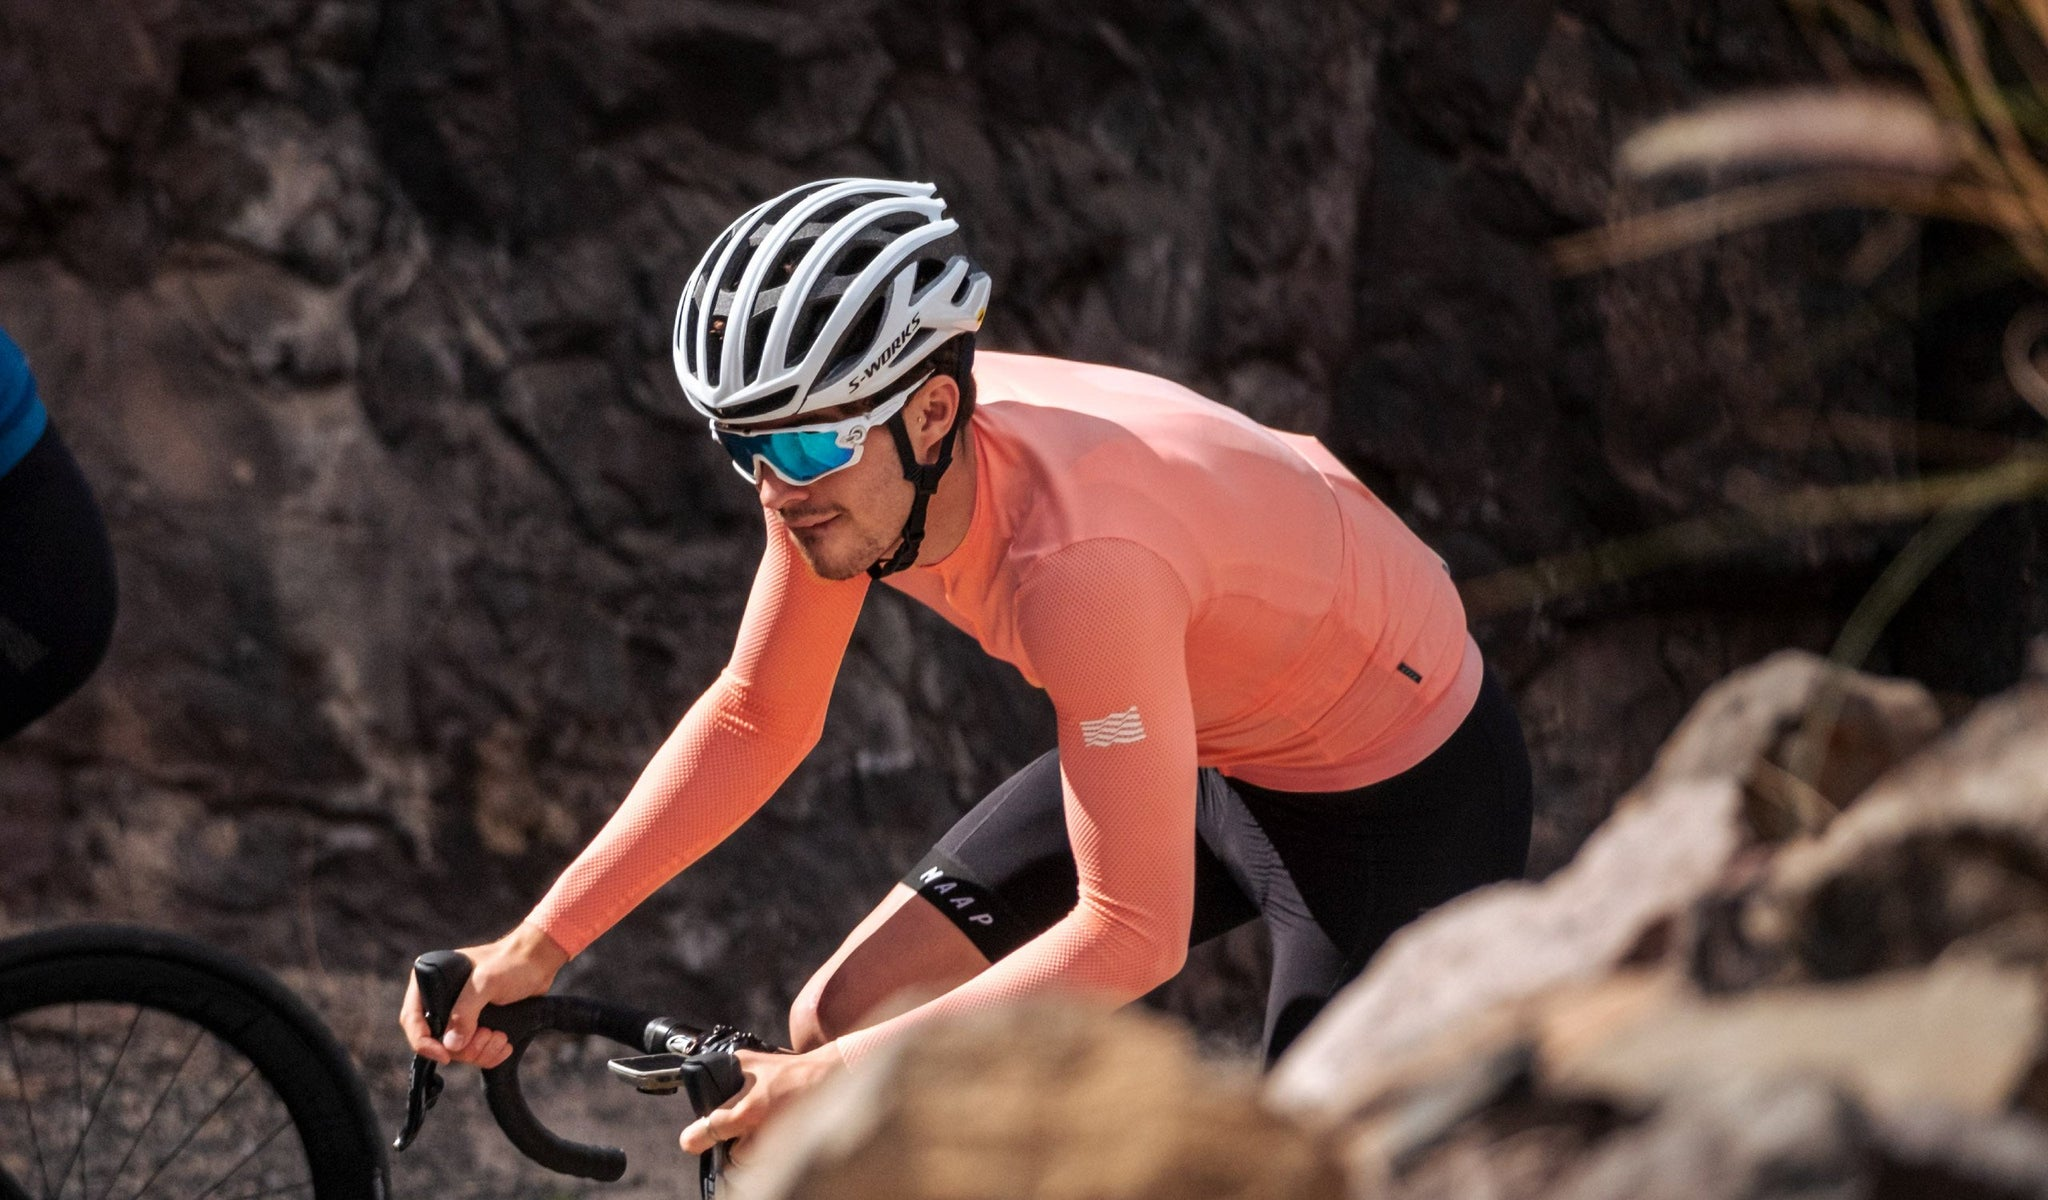 MAAP Echo Pro Base Long Sleeve Cycling Jersey in Light Coral for riding in mild conditions.